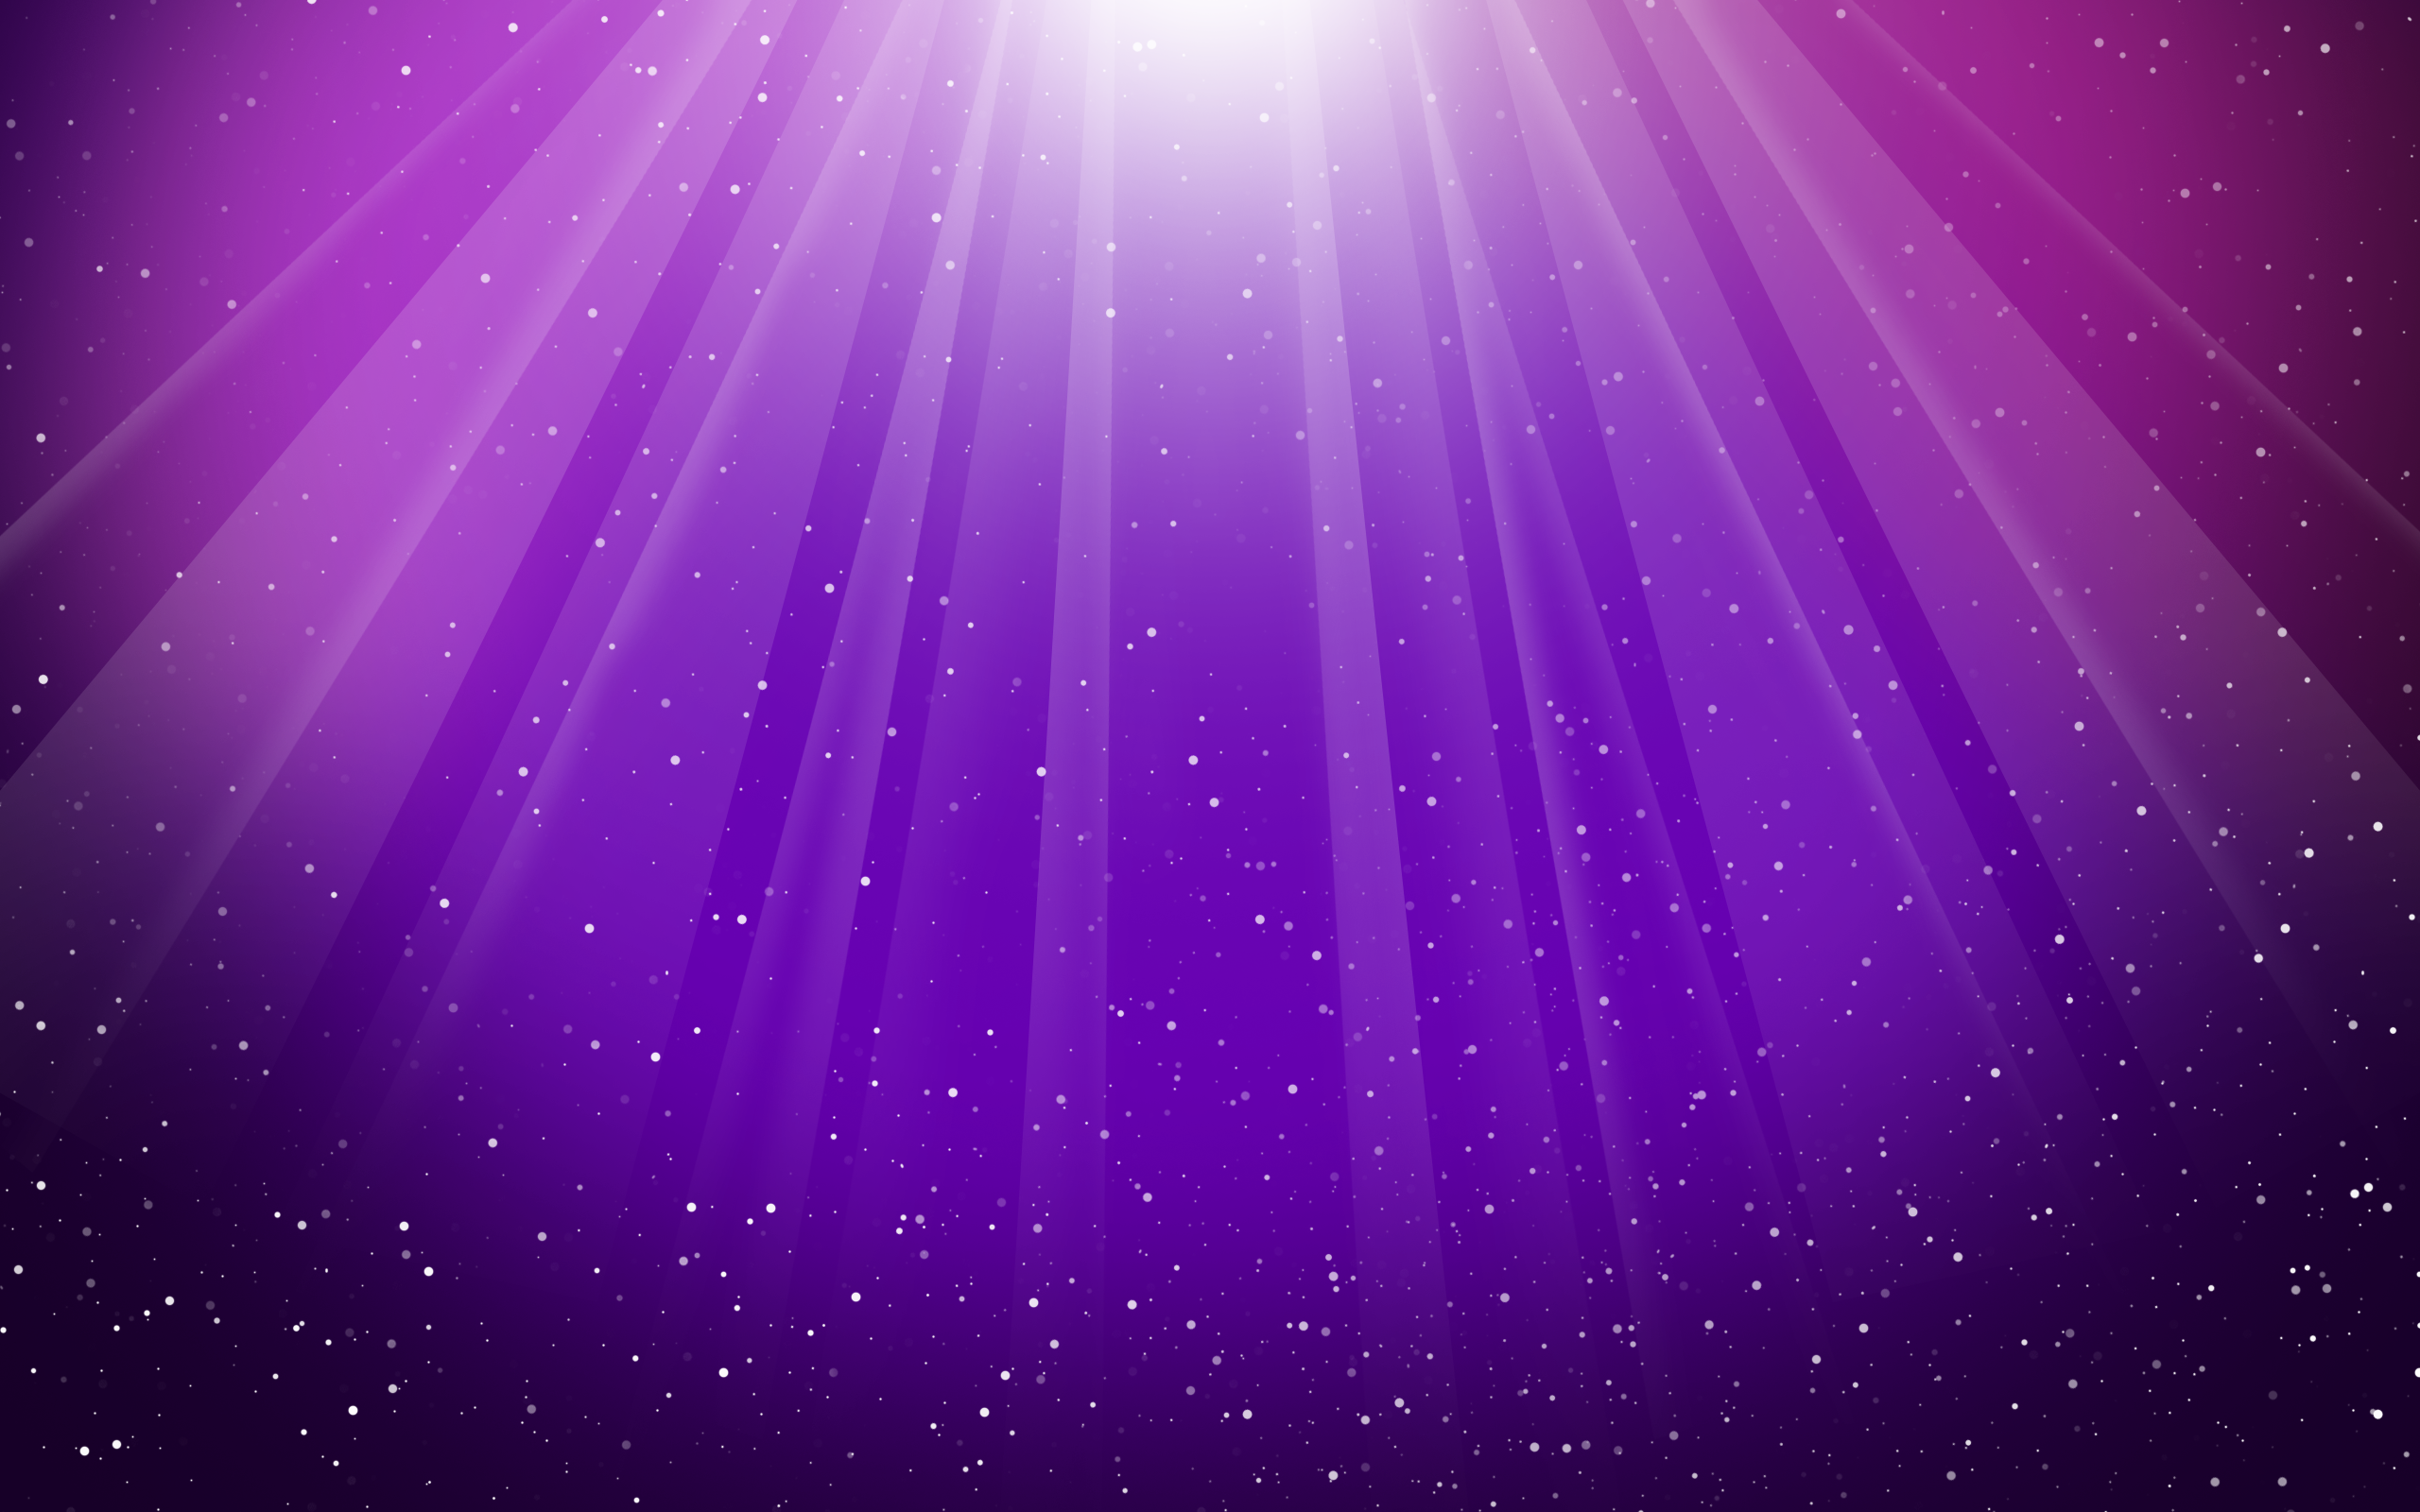 Purple Wallpaper - Colors Wallpaper (34511558) - Fanpop